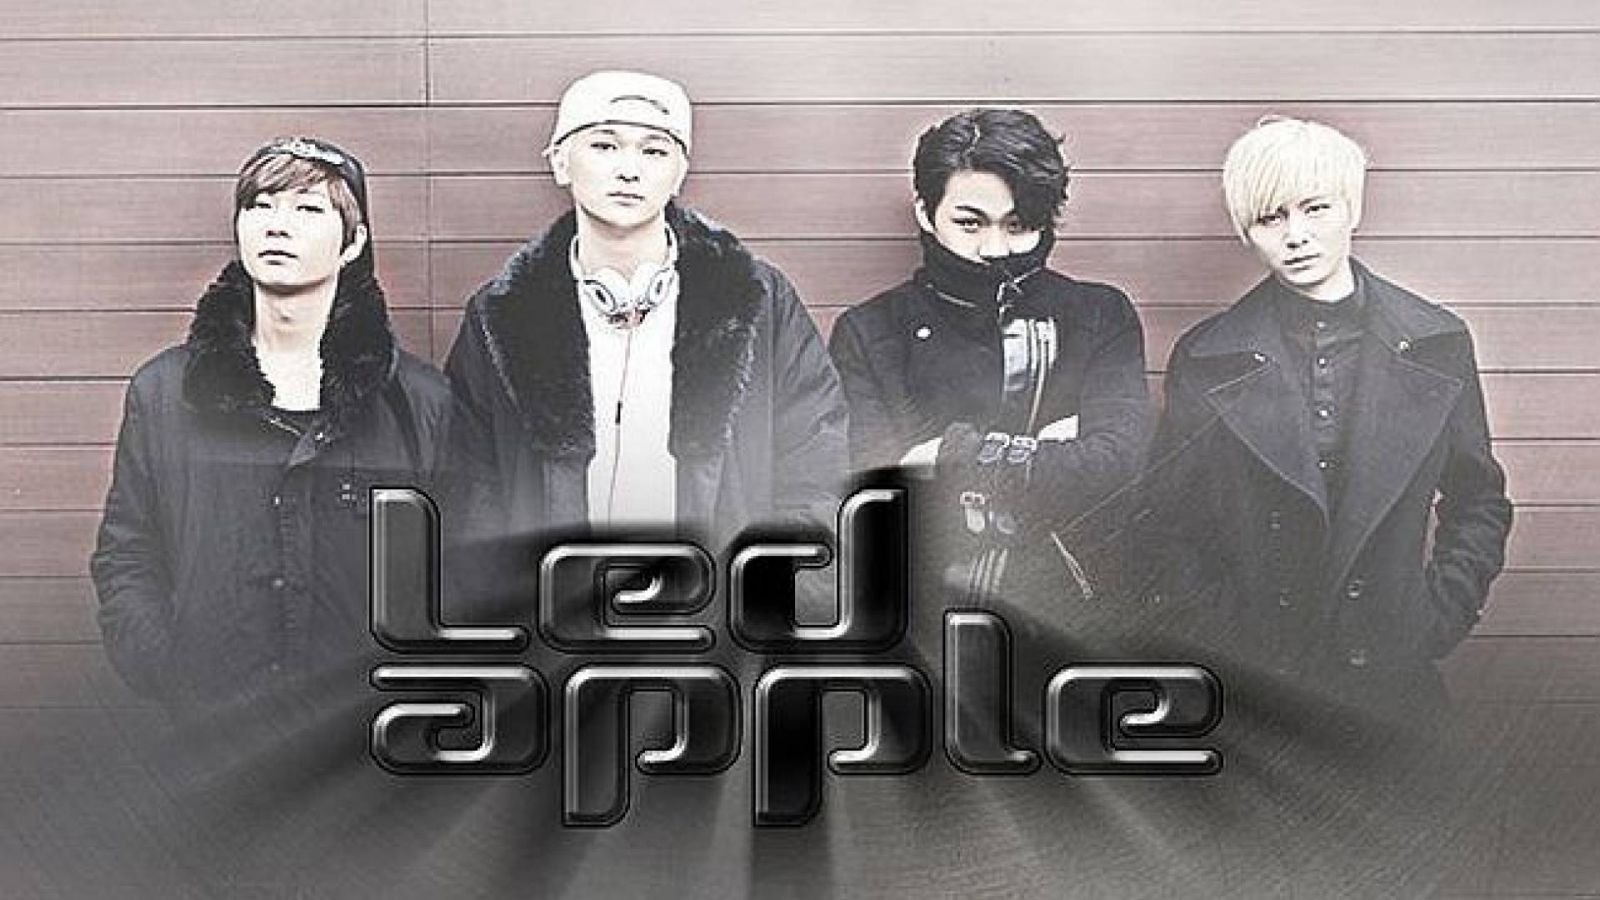 LEDApple © LEDApple Official Facebook Page